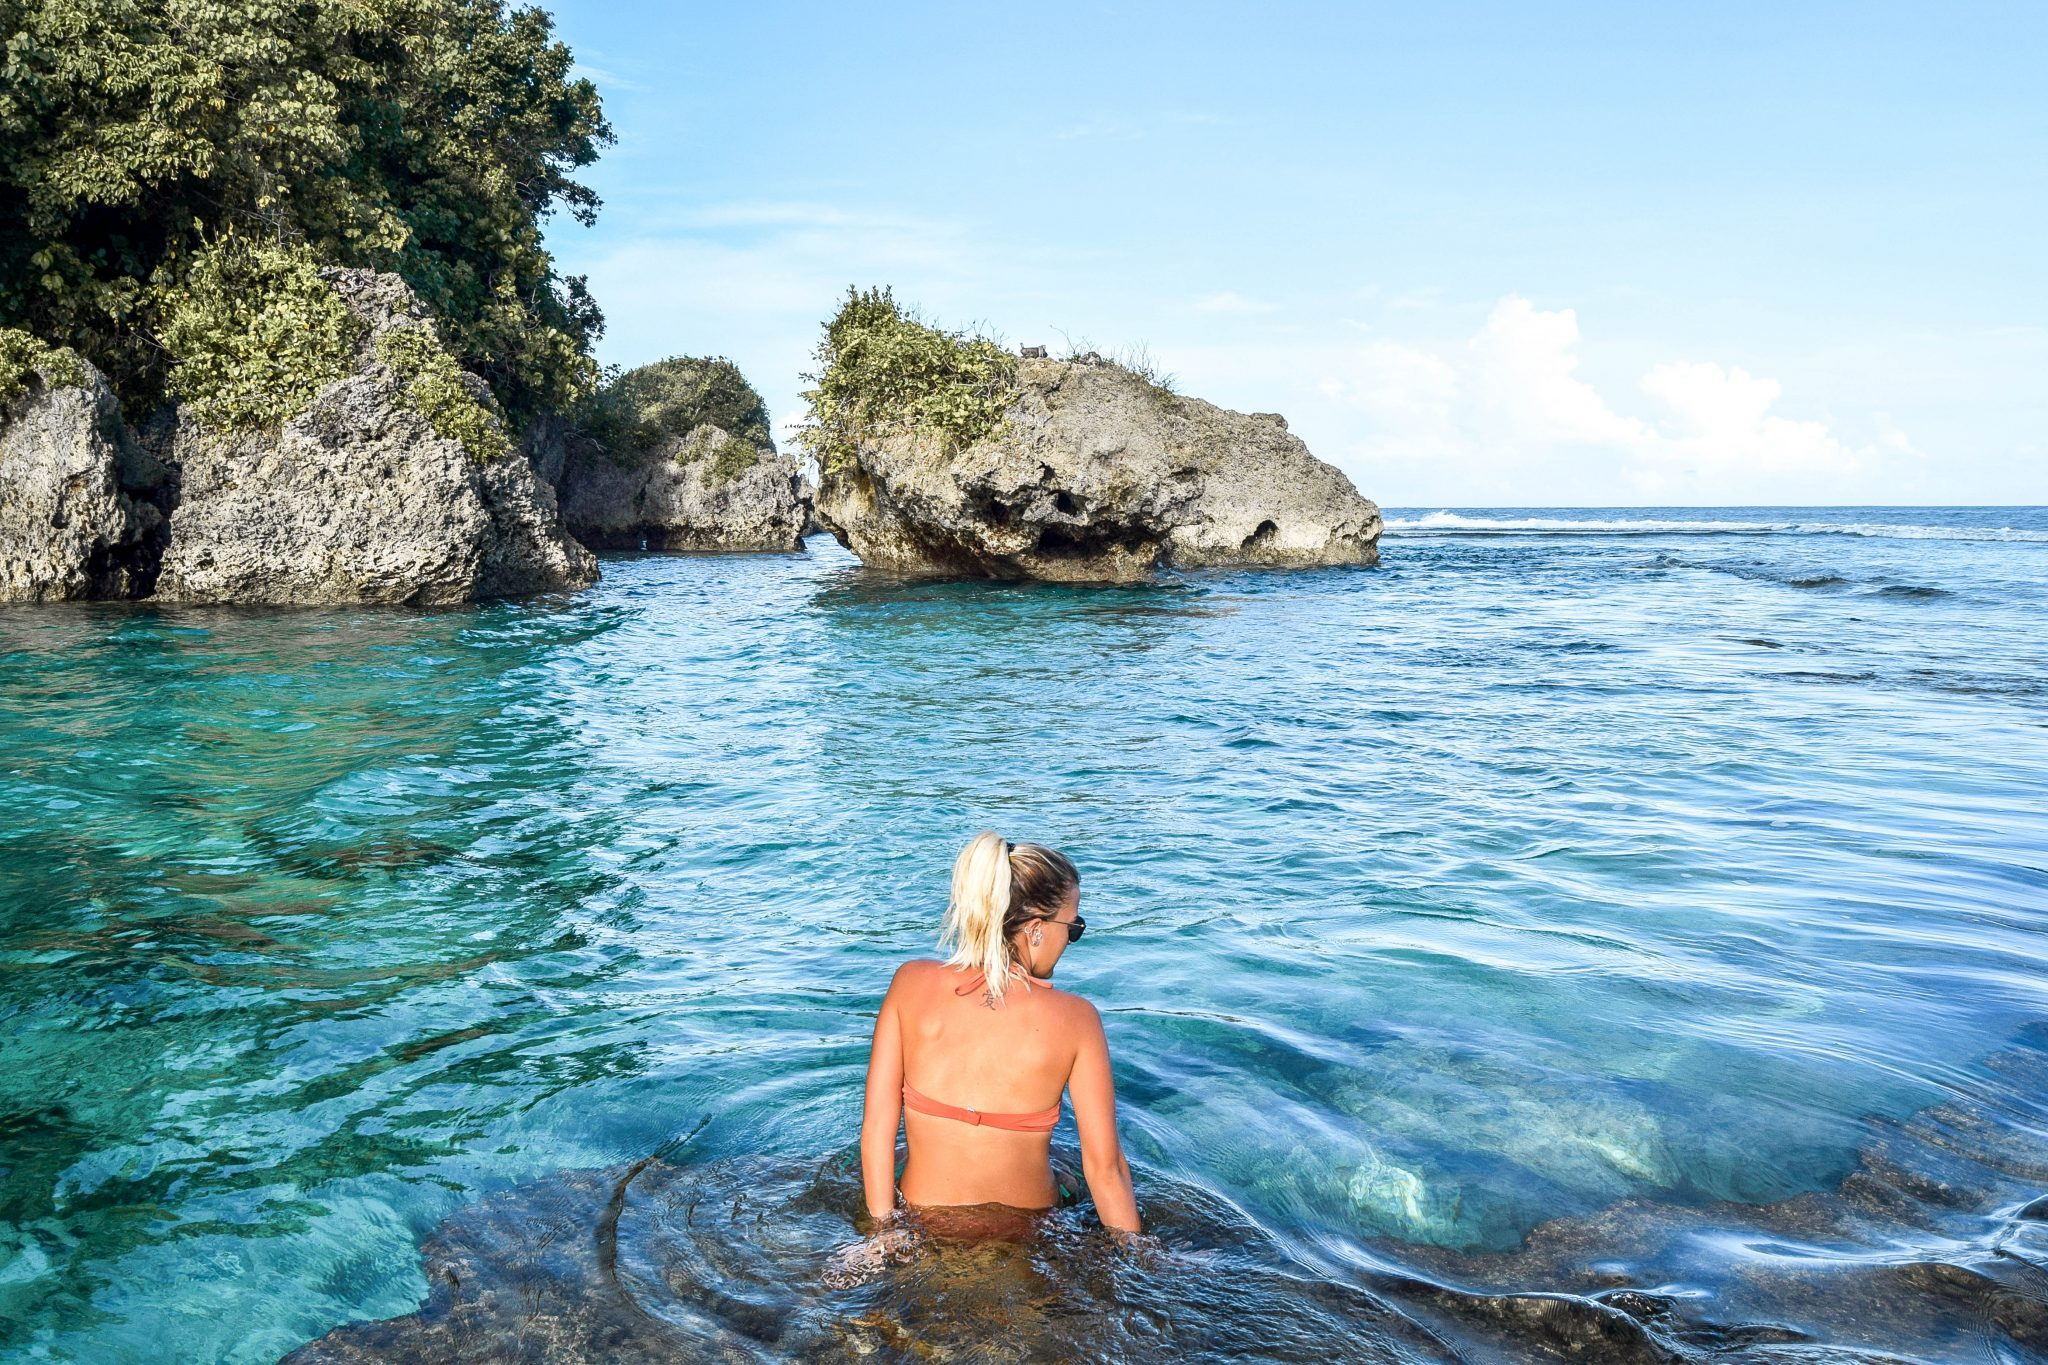 Wanderers & Warriors - Charlie & Lauren UK Travel Couple - Magpupungko Rock Pools Siargao Philippines - Siargao Tourist Spots - Things To Do In Siargao Island